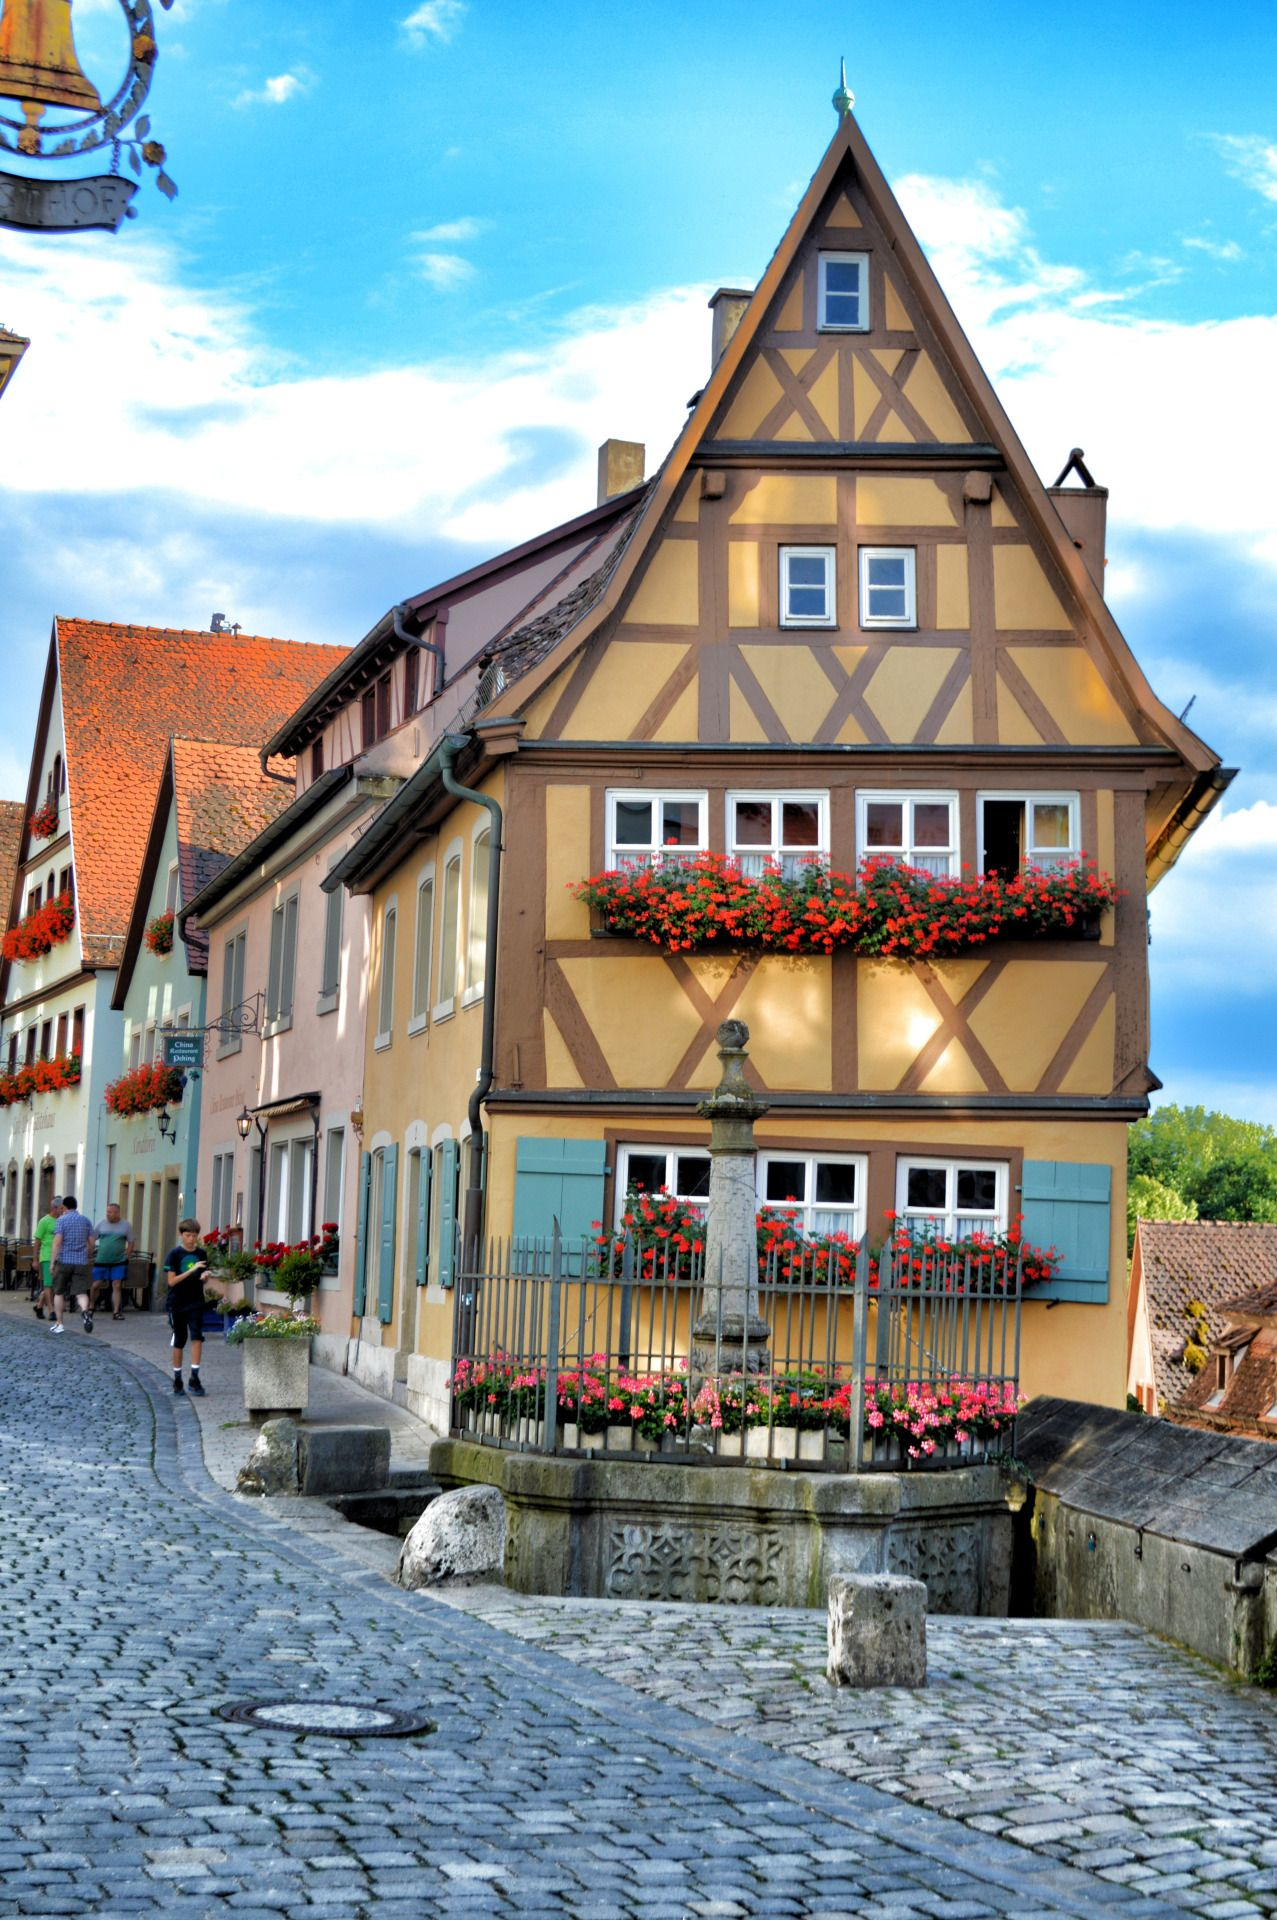 Rothenburg ob der Tauber - Germany (by annajewelsphotography)